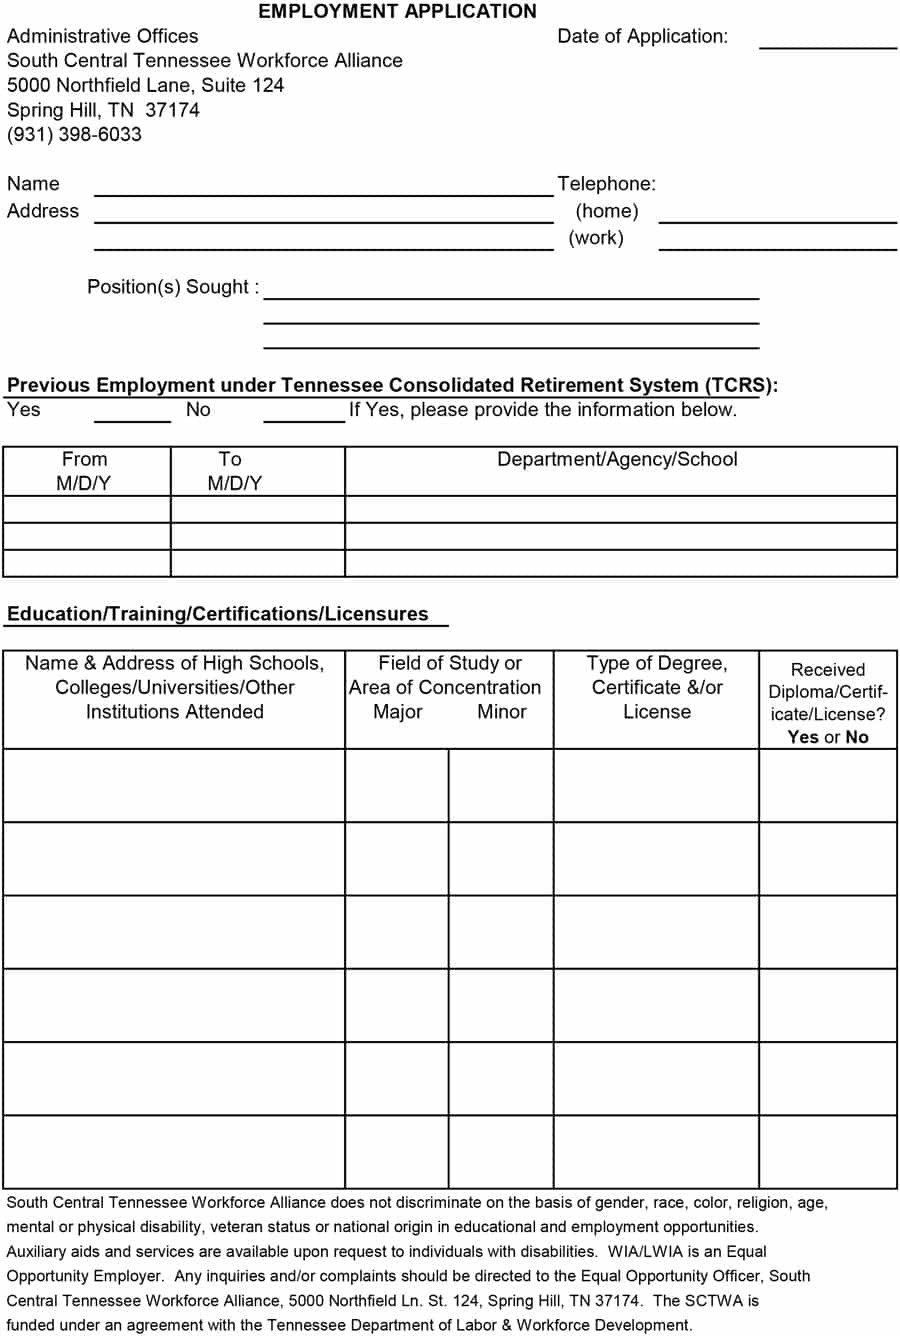 28 Employment Application form Template in 2020 Job